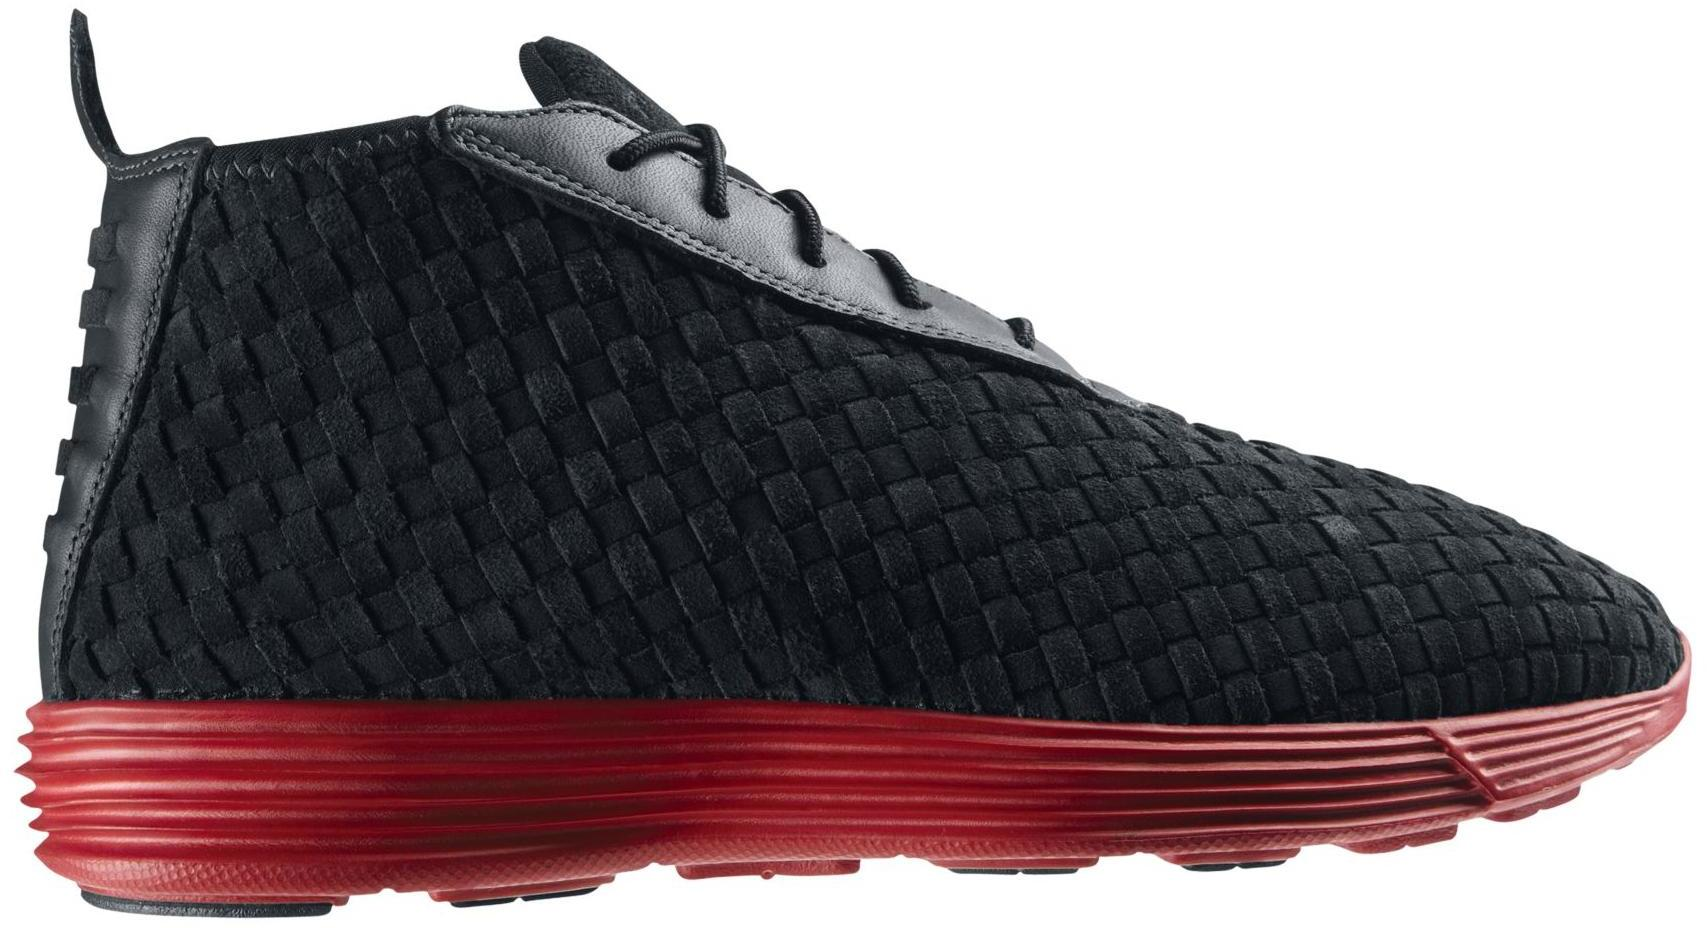 Nike Lunar Chukka Woven Black Red (GS) Sneakers (Black/Anthracite-Varsity Red)